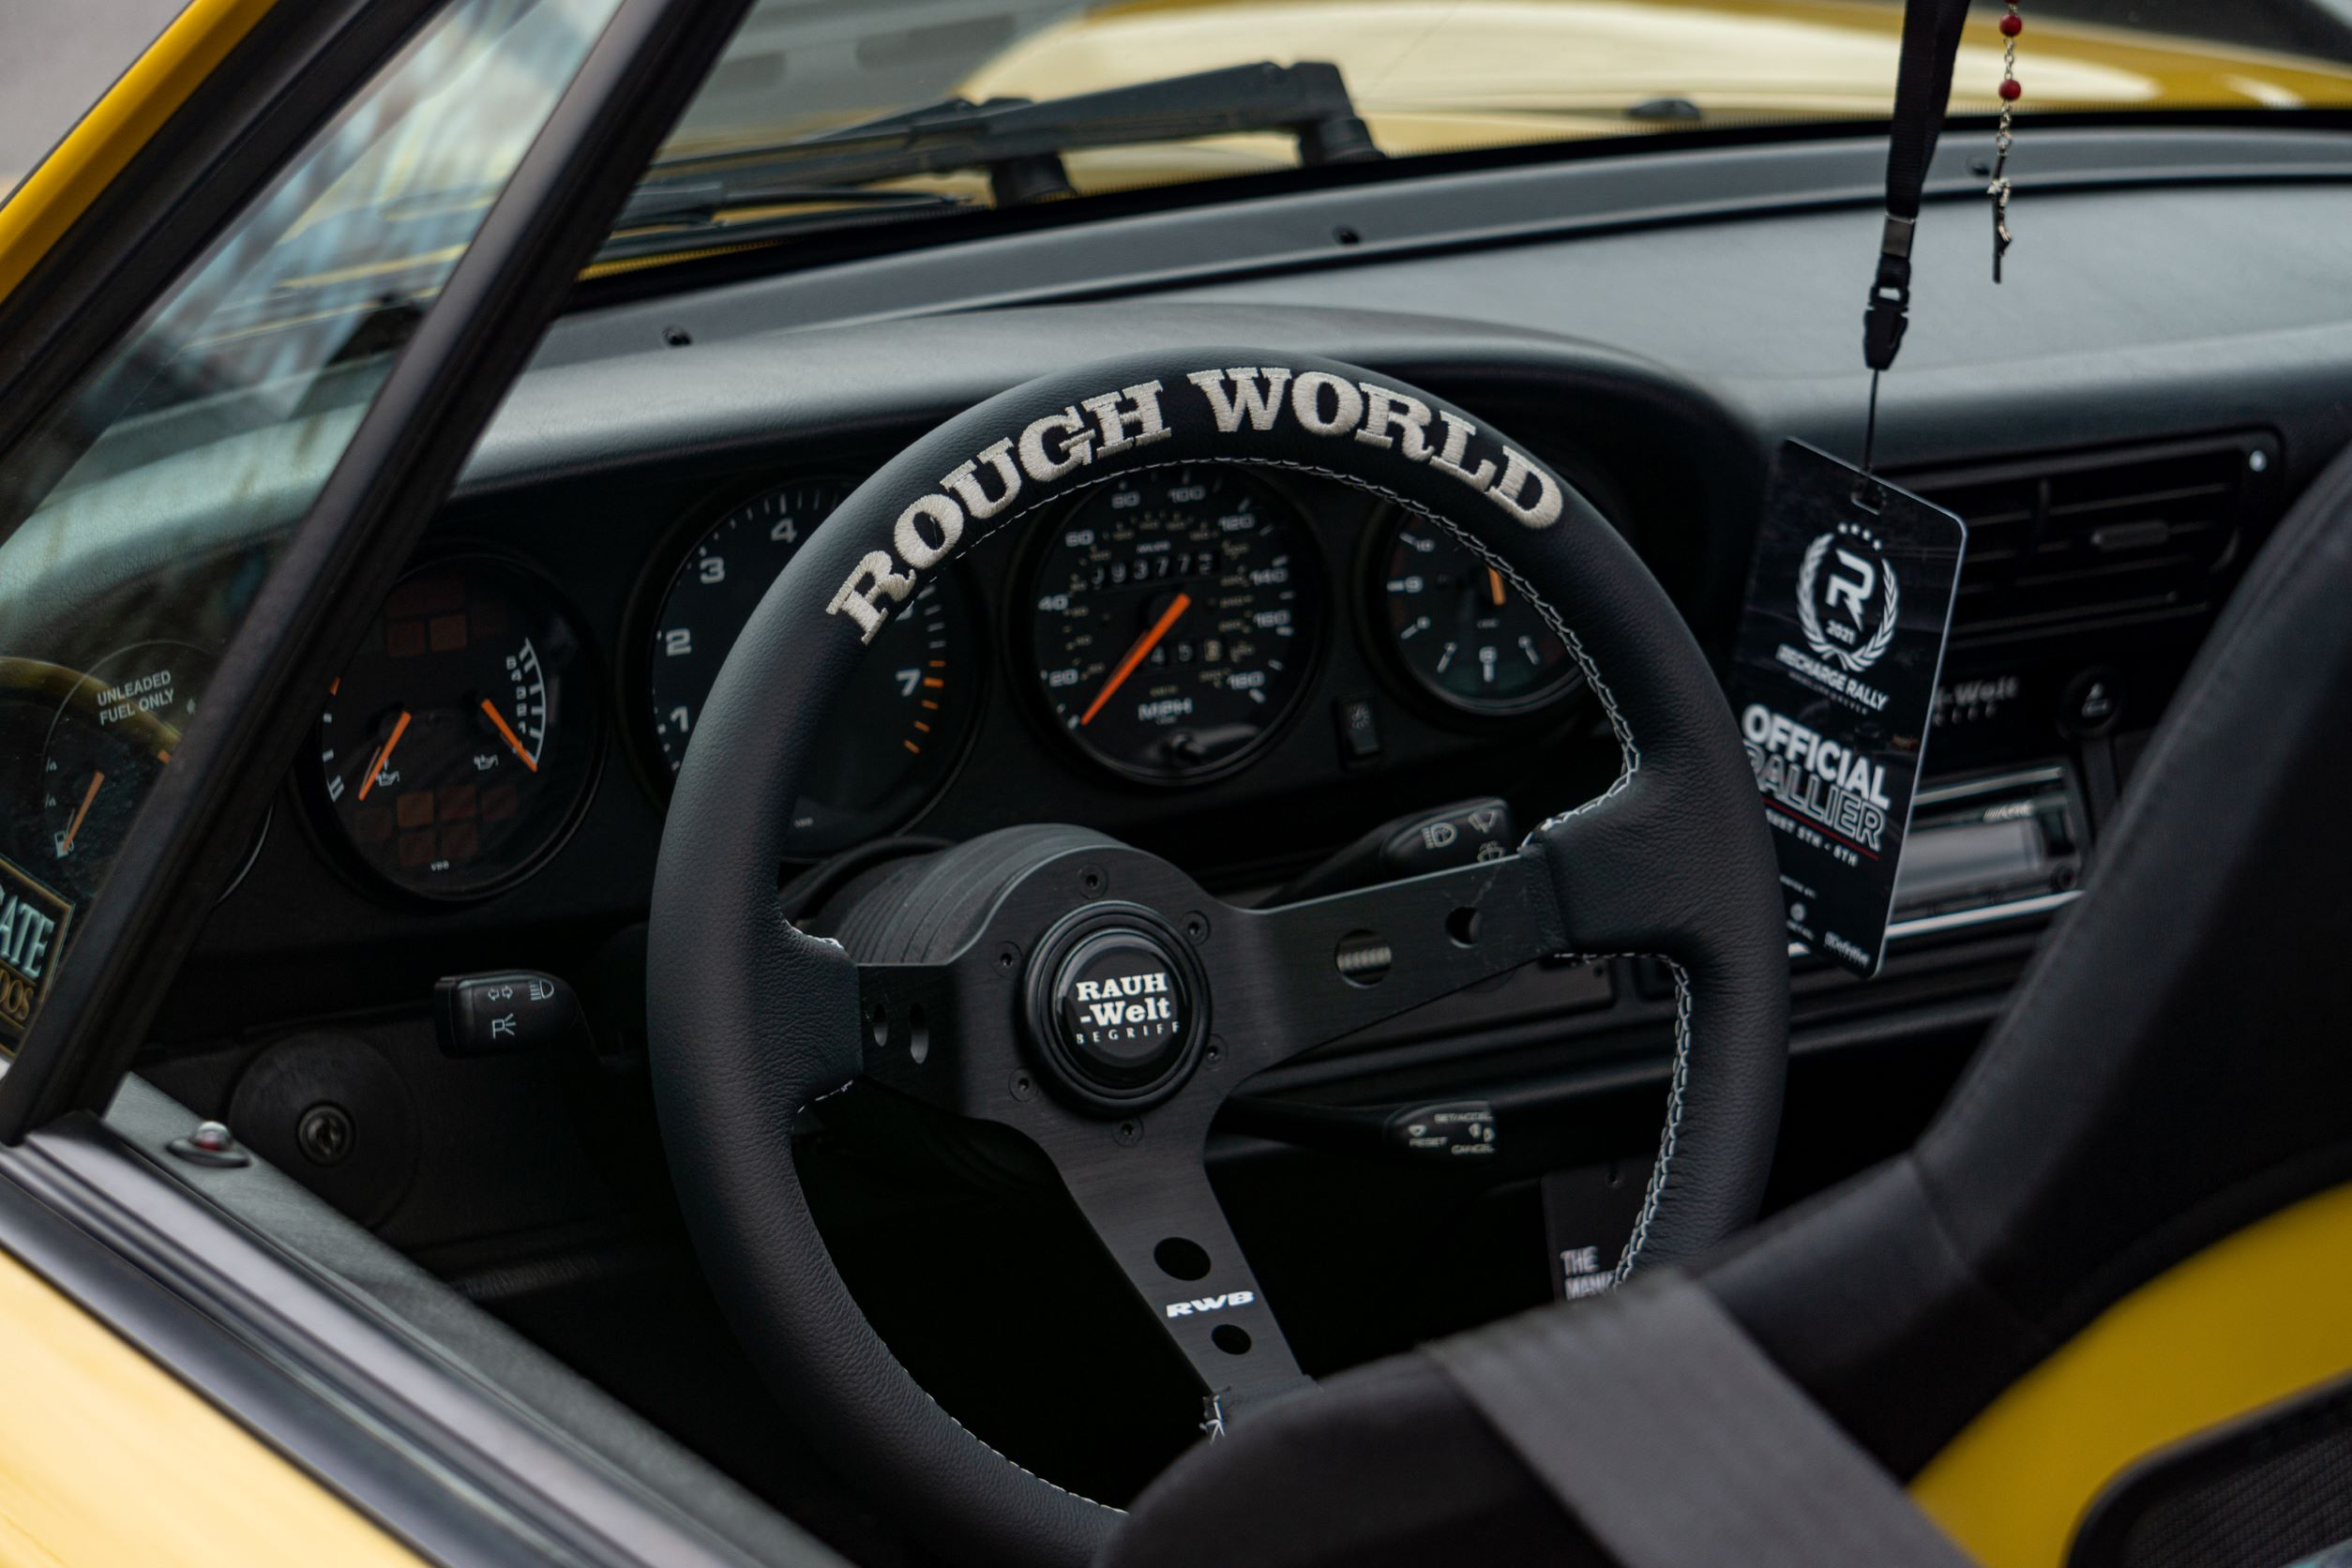 The black steering wheel, gauges, and seat of the yellow-and-black RWB Porsche 993 911 Cabriolet 'Nohra'